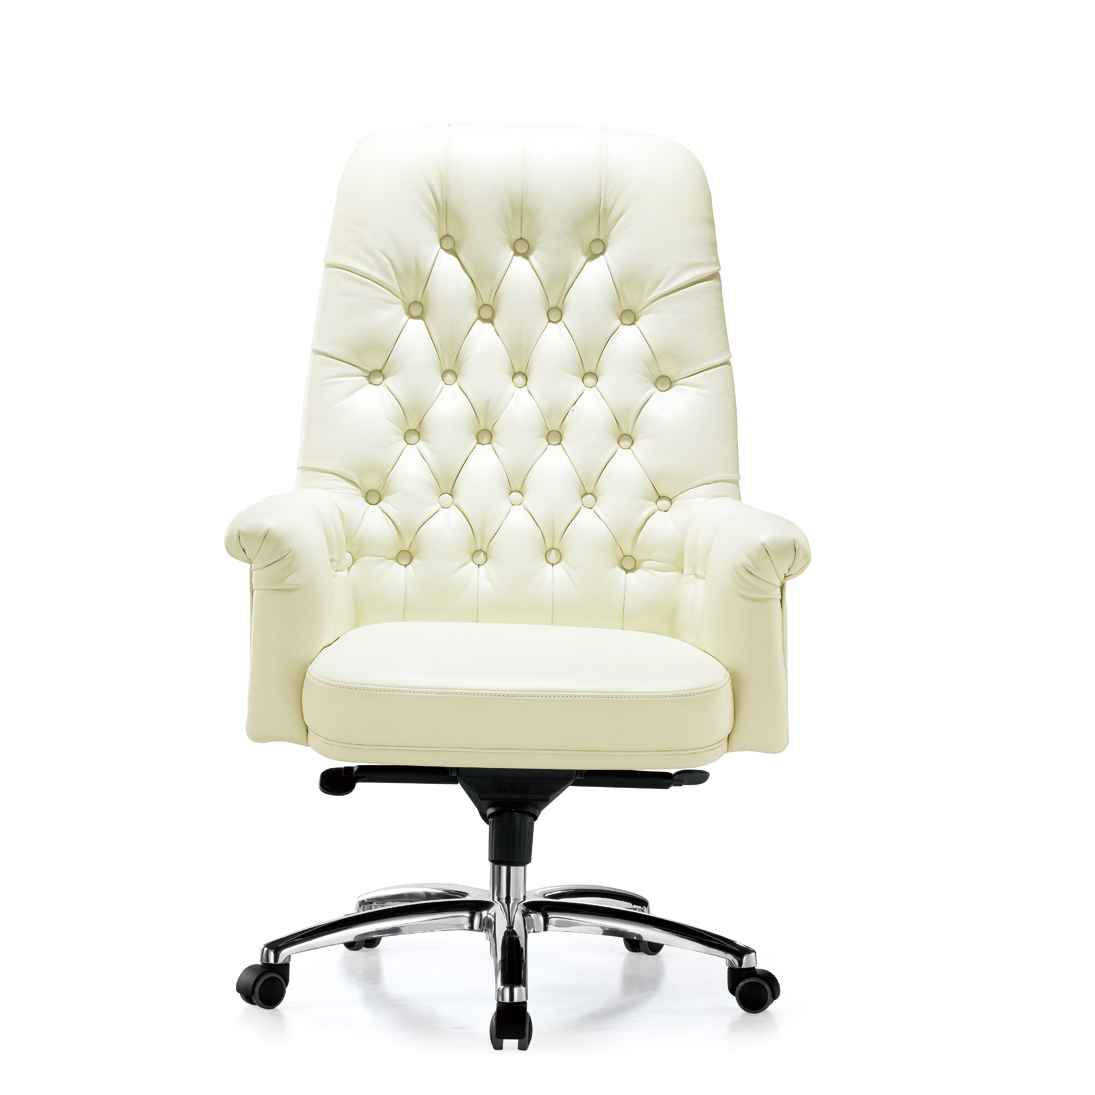 white leather desk chair | Office Furniture